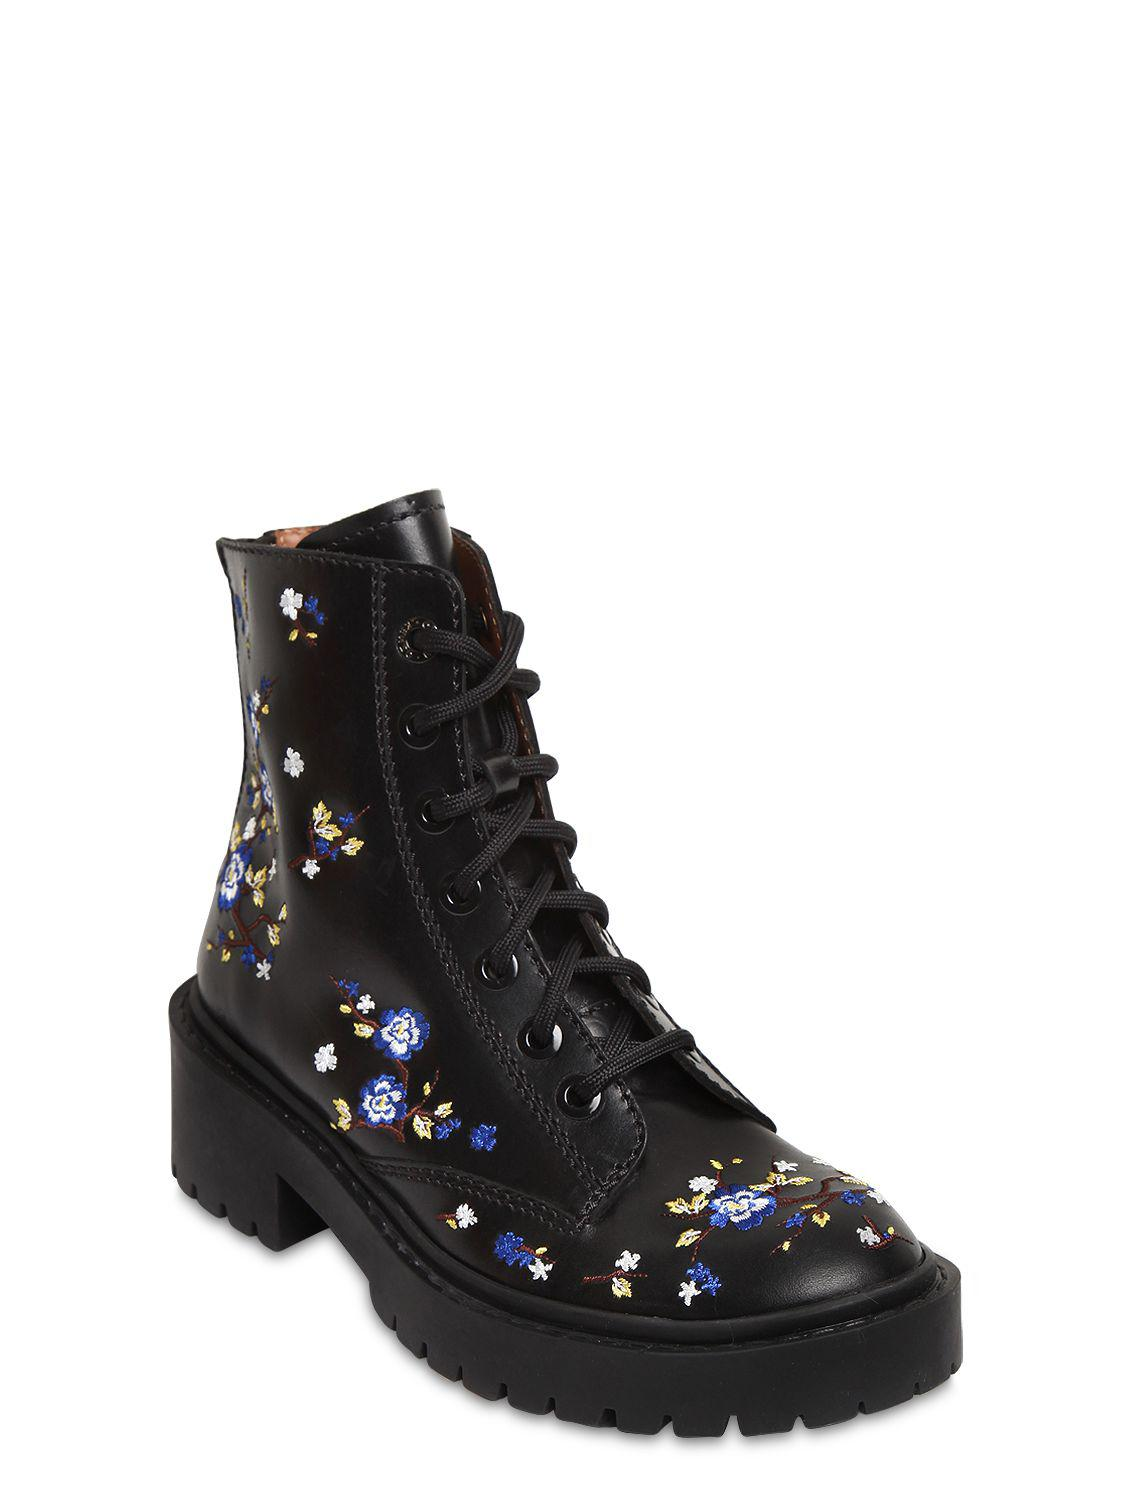 Kenzo 50MM FLORAL EMBROIDERED LEATHER BOOTS